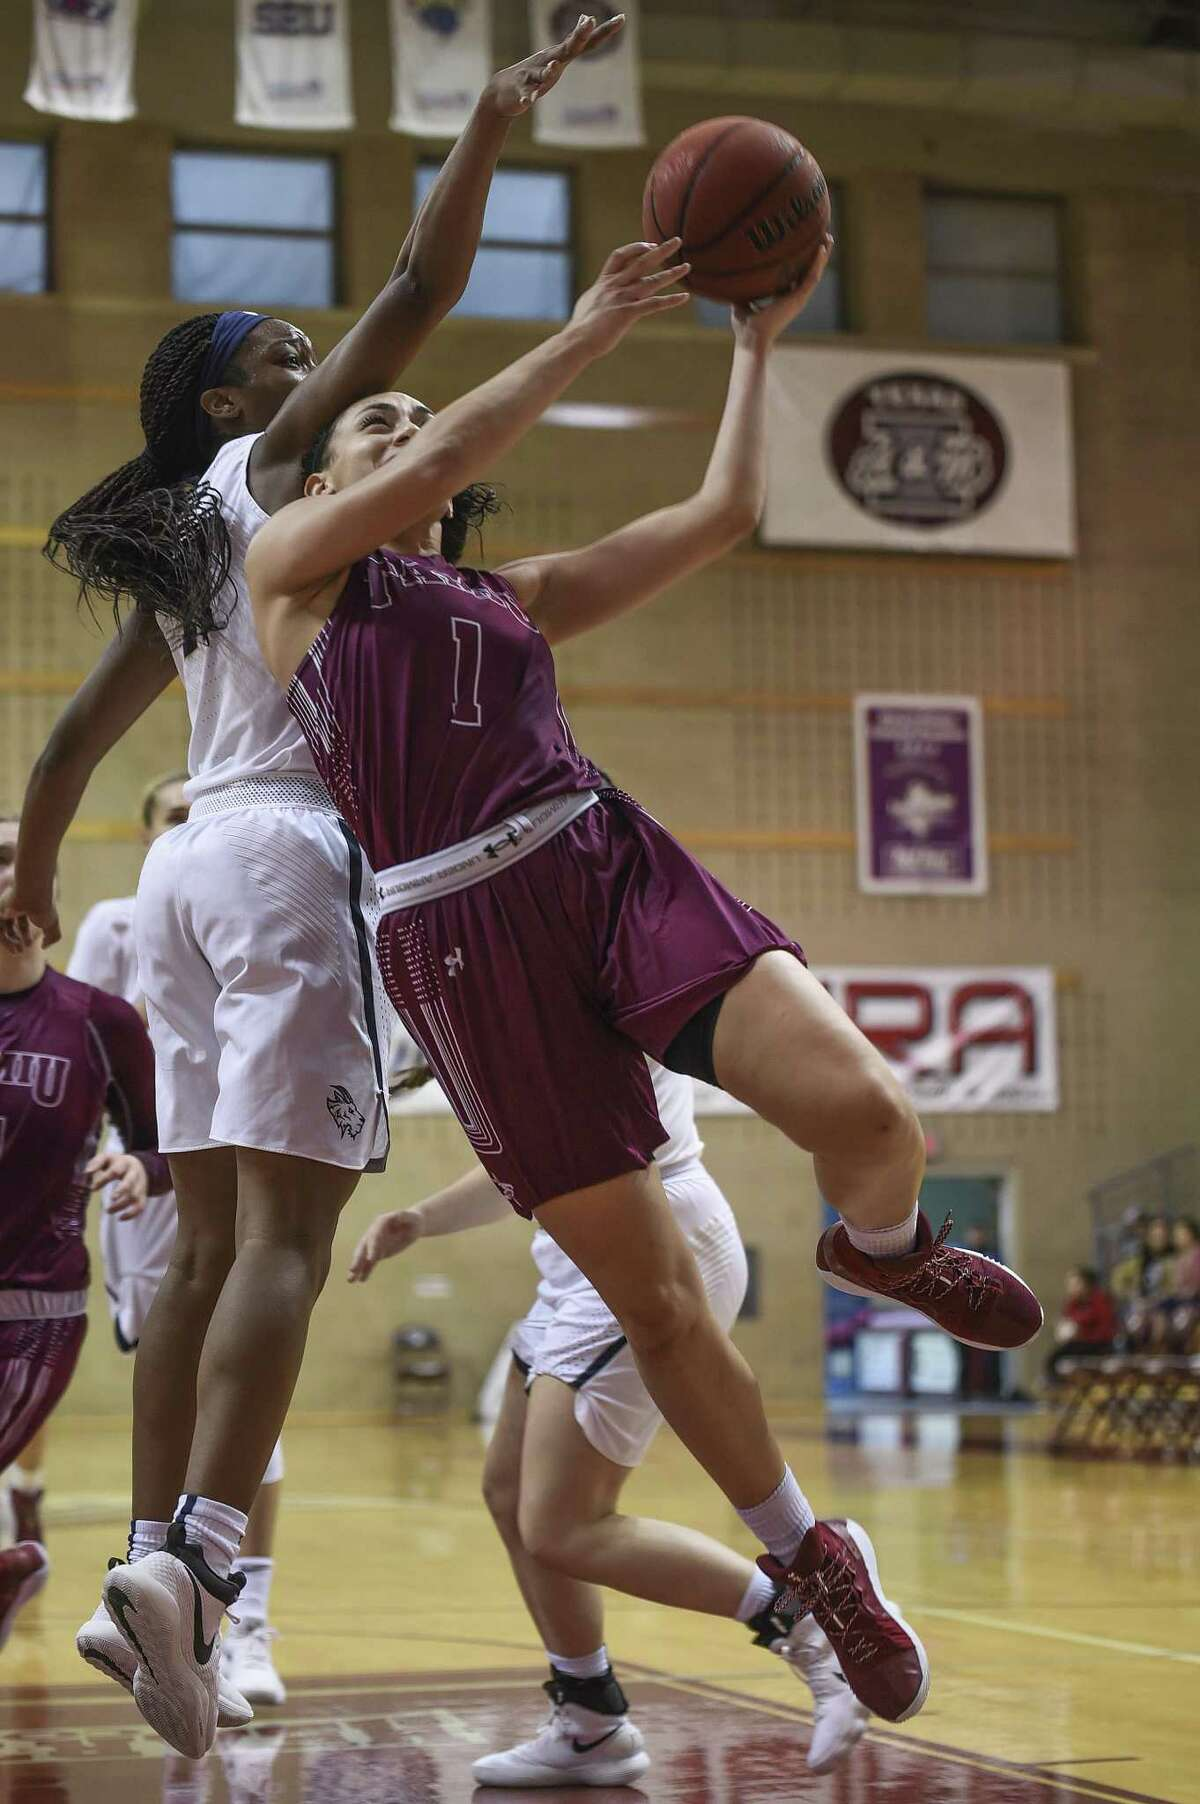 Tantashea Giger had a game-high 15 points as the Dustdevils were edged 55-51 in their season opener at home against Chadron State on Friday night.